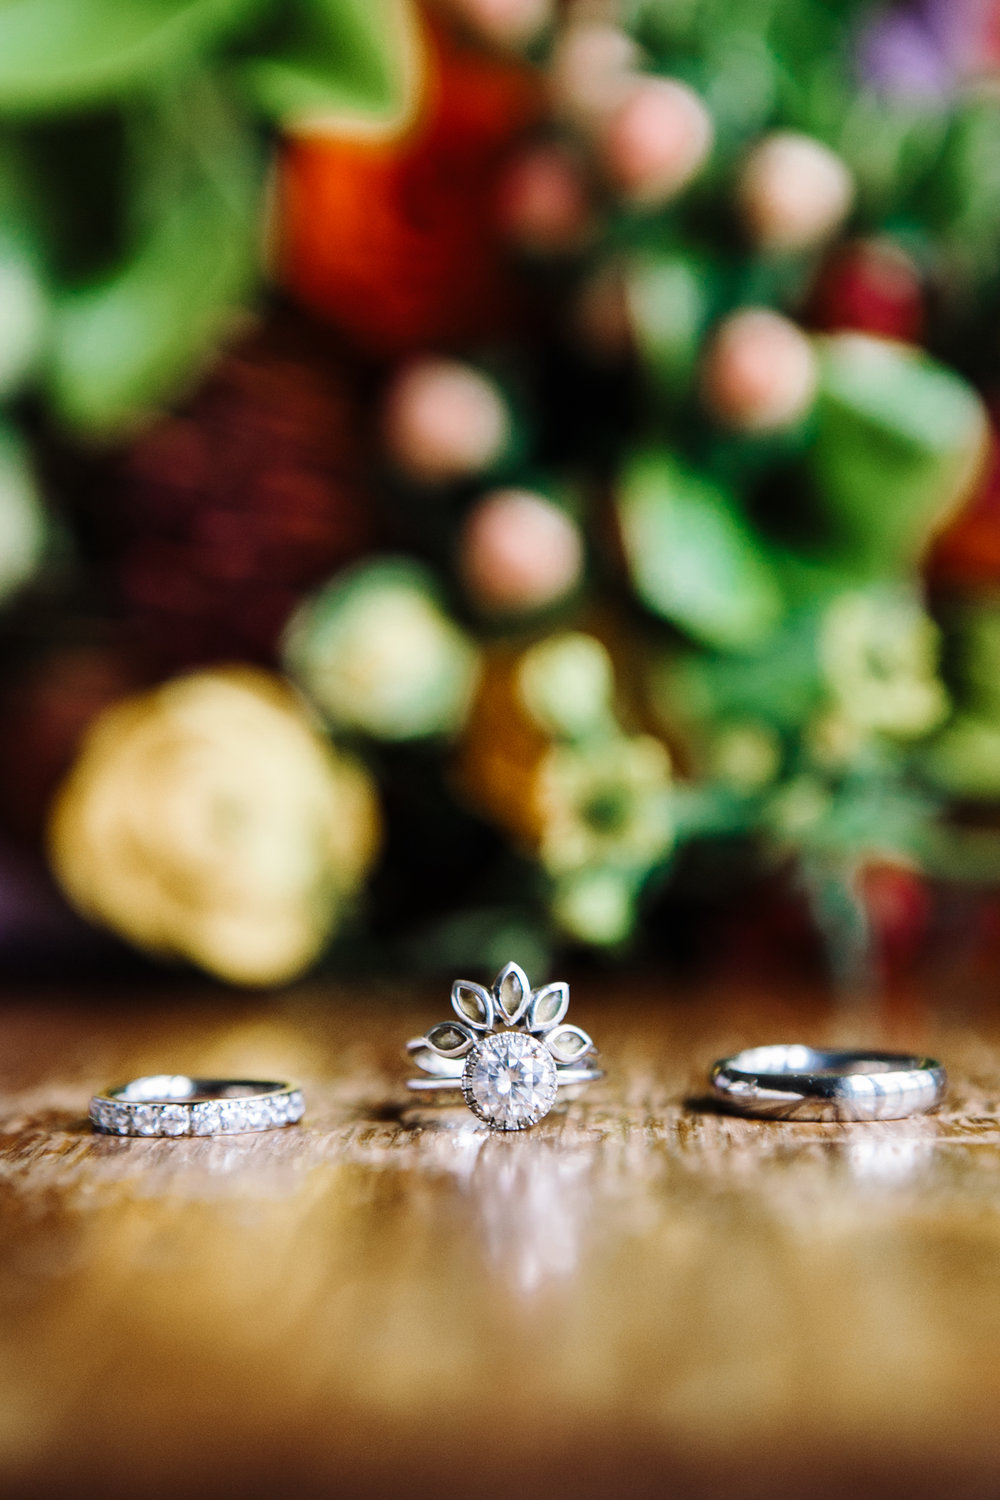 Ring and Flower Detail